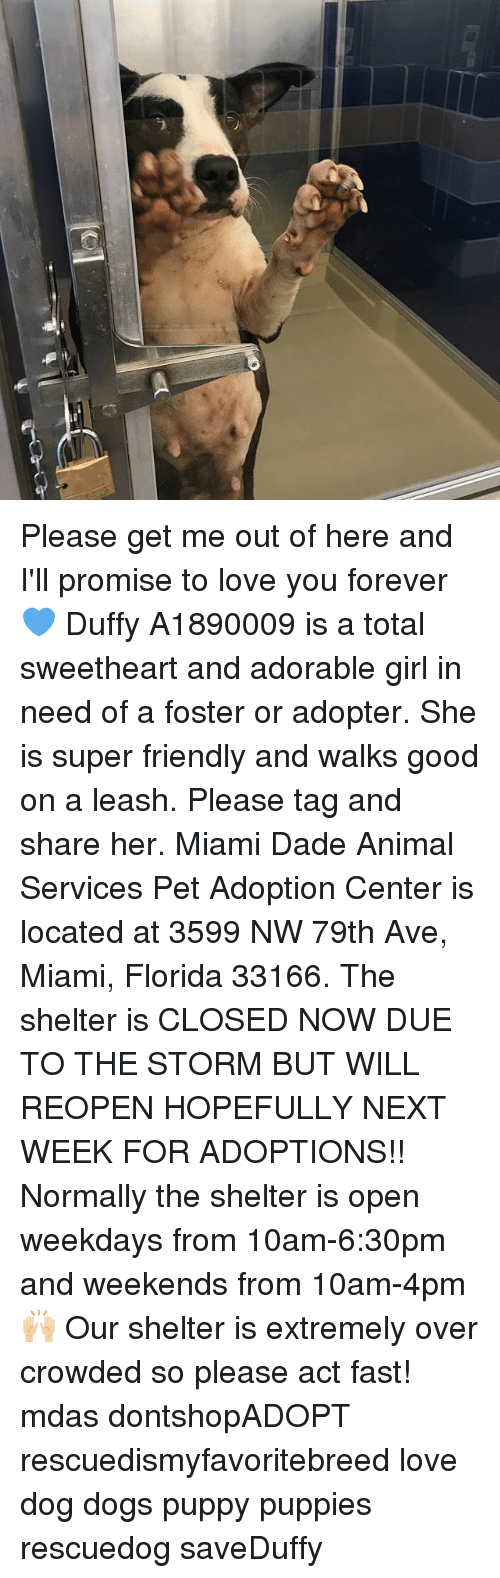 Sweethearted: Please get me out of here and I'll promise to love you forever 💙 Duffy A1890009 is a total sweetheart and adorable girl in need of a foster or adopter. She is super friendly and walks good on a leash. Please tag and share her. Miami Dade Animal Services Pet Adoption Center is located at 3599 NW 79th Ave, Miami, Florida 33166. The shelter is CLOSED NOW DUE TO THE STORM BUT WILL REOPEN HOPEFULLY NEXT WEEK FOR ADOPTIONS!! Normally the shelter is open weekdays from 10am-6:30pm and weekends from 10am-4pm 🙌🏼 Our shelter is extremely over crowded so please act fast! mdas dontshopADOPT rescuedismyfavoritebreed love dog dogs puppy puppies rescuedog saveDuffy